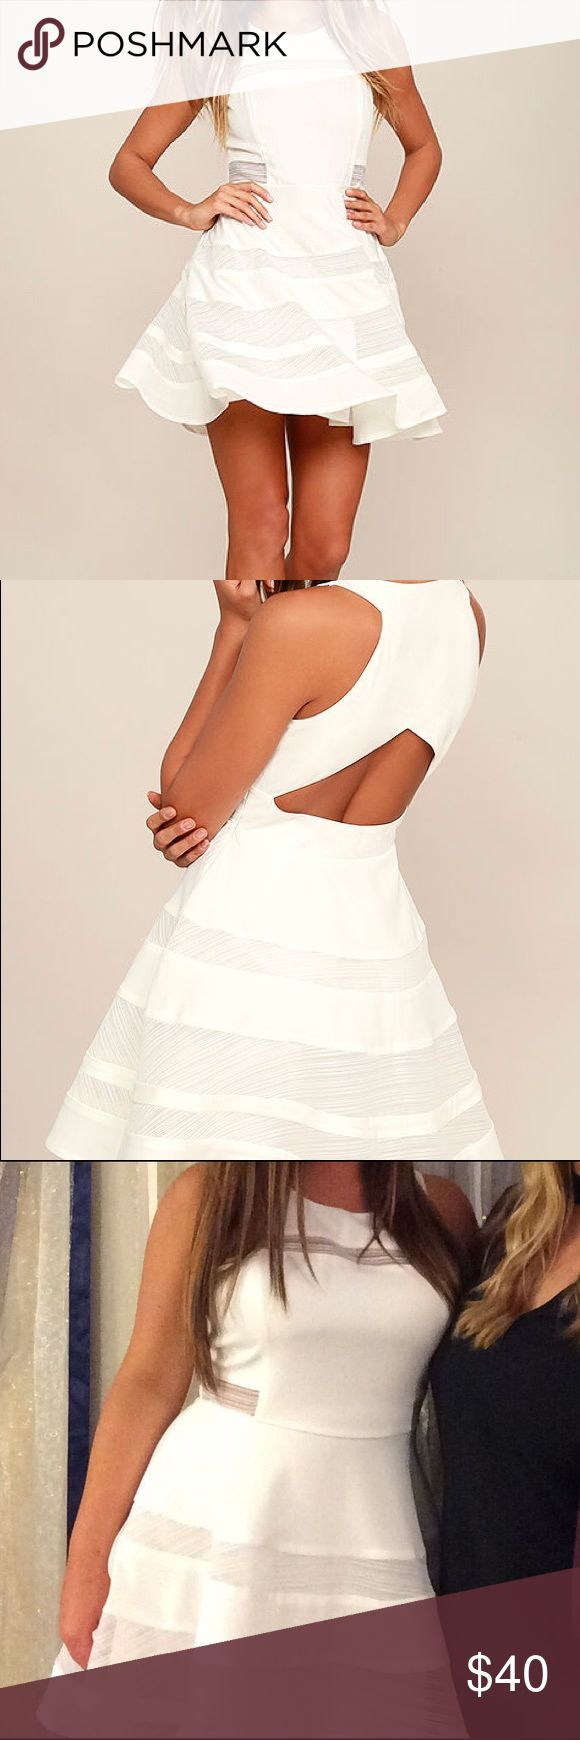 Beautiful White Dress Wore this once for my bachelorette party! It was a success! Sweet, playful, and totally charming, the Play Nice Ivory Skater Dress will earn you admirers left and right! Ivory woven poly is silky soft and light throughout the fitted bodice with rounded neckline, princess seams, and sexy sheer mesh panels. The skater skirt completes this party-ready ensemble with more alluring bands of mesh. Circular cutout at back. Hidden side zipper with clasp. Lulu's Dresses